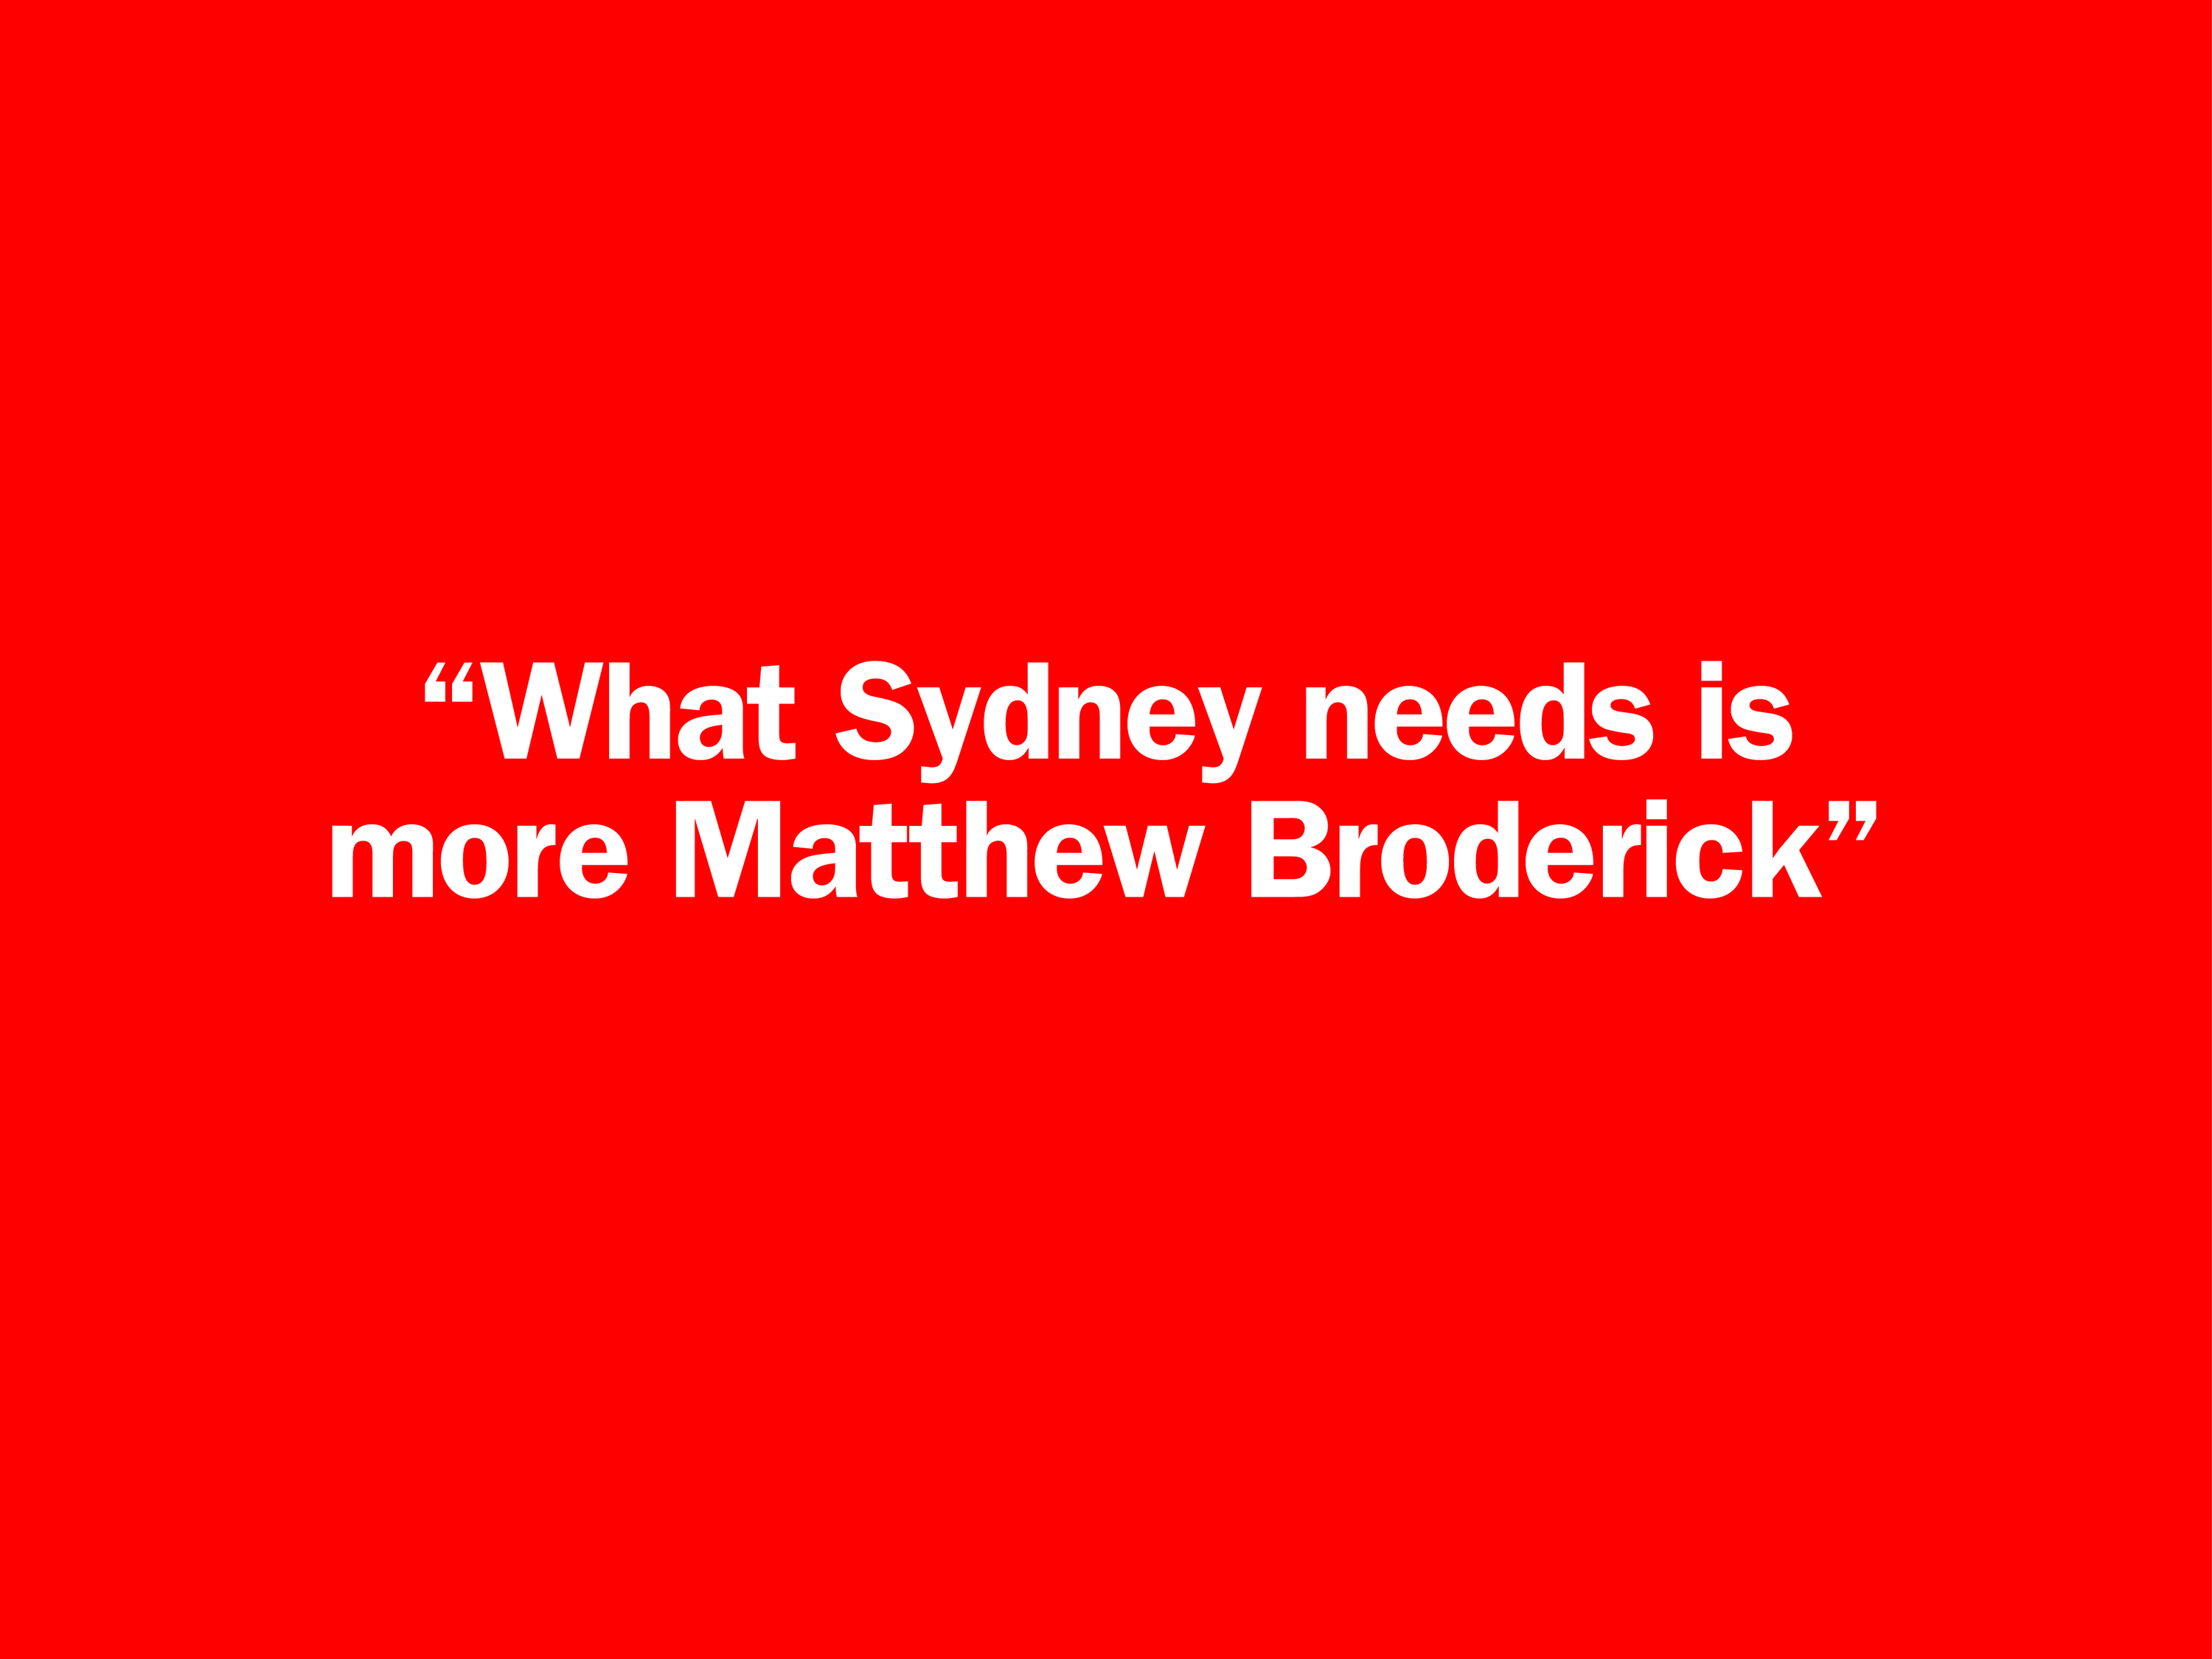 Pitt St Drawl: 4 crazy things we overheard in Sydney this month